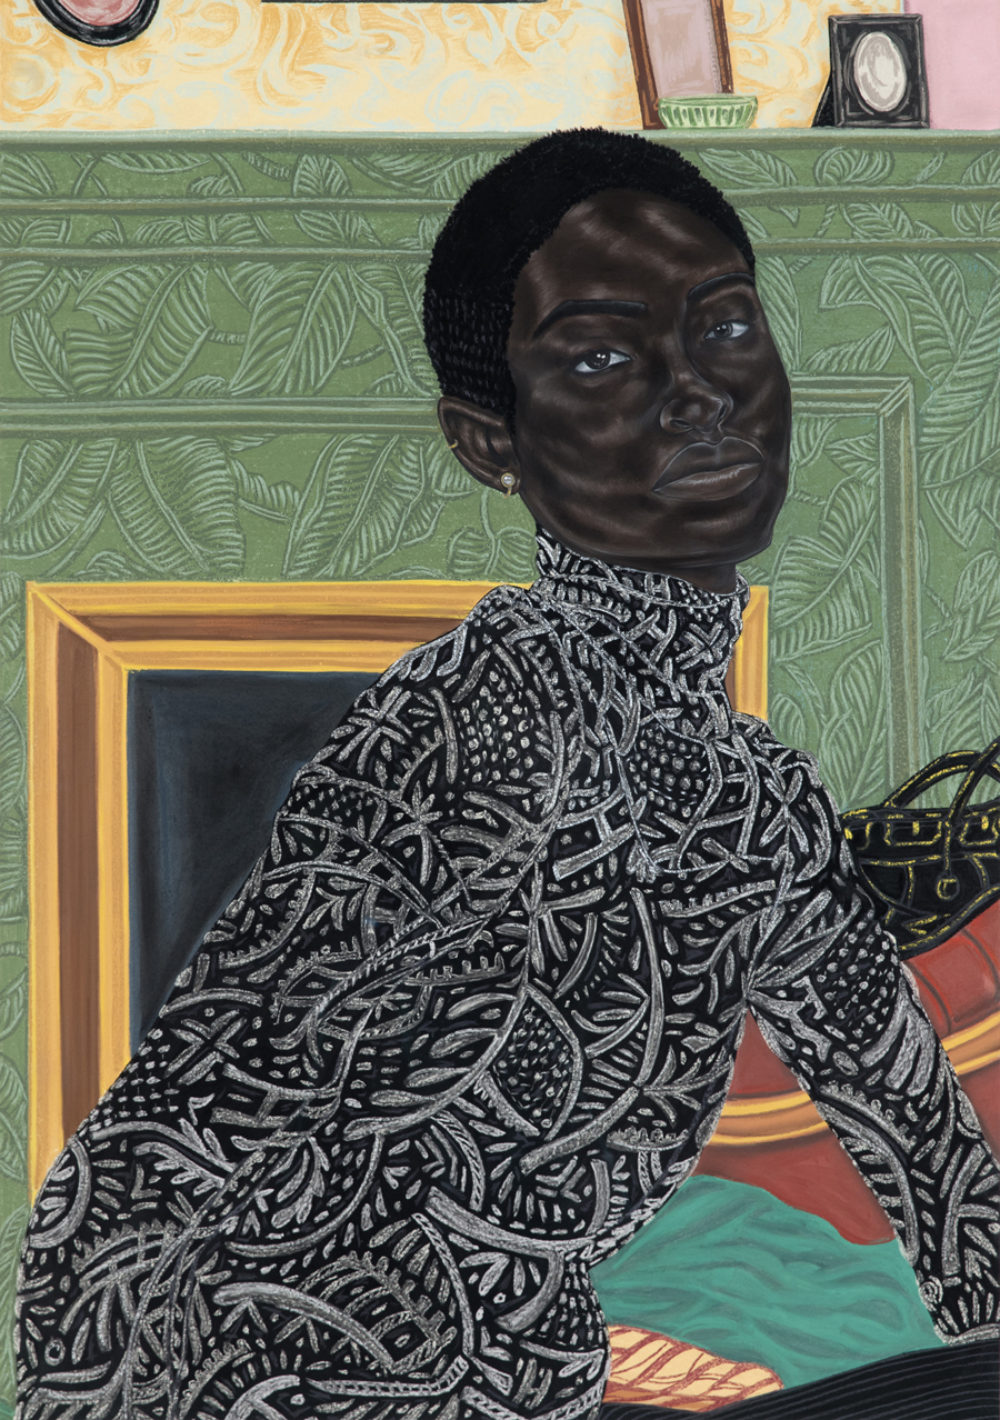 Toyin Ojih Odutola, Paris Apartment, 2016–17. Charcoal, pastel, and pencil on paper, 59 ⅜ × 42 inches. Private collection, New York.